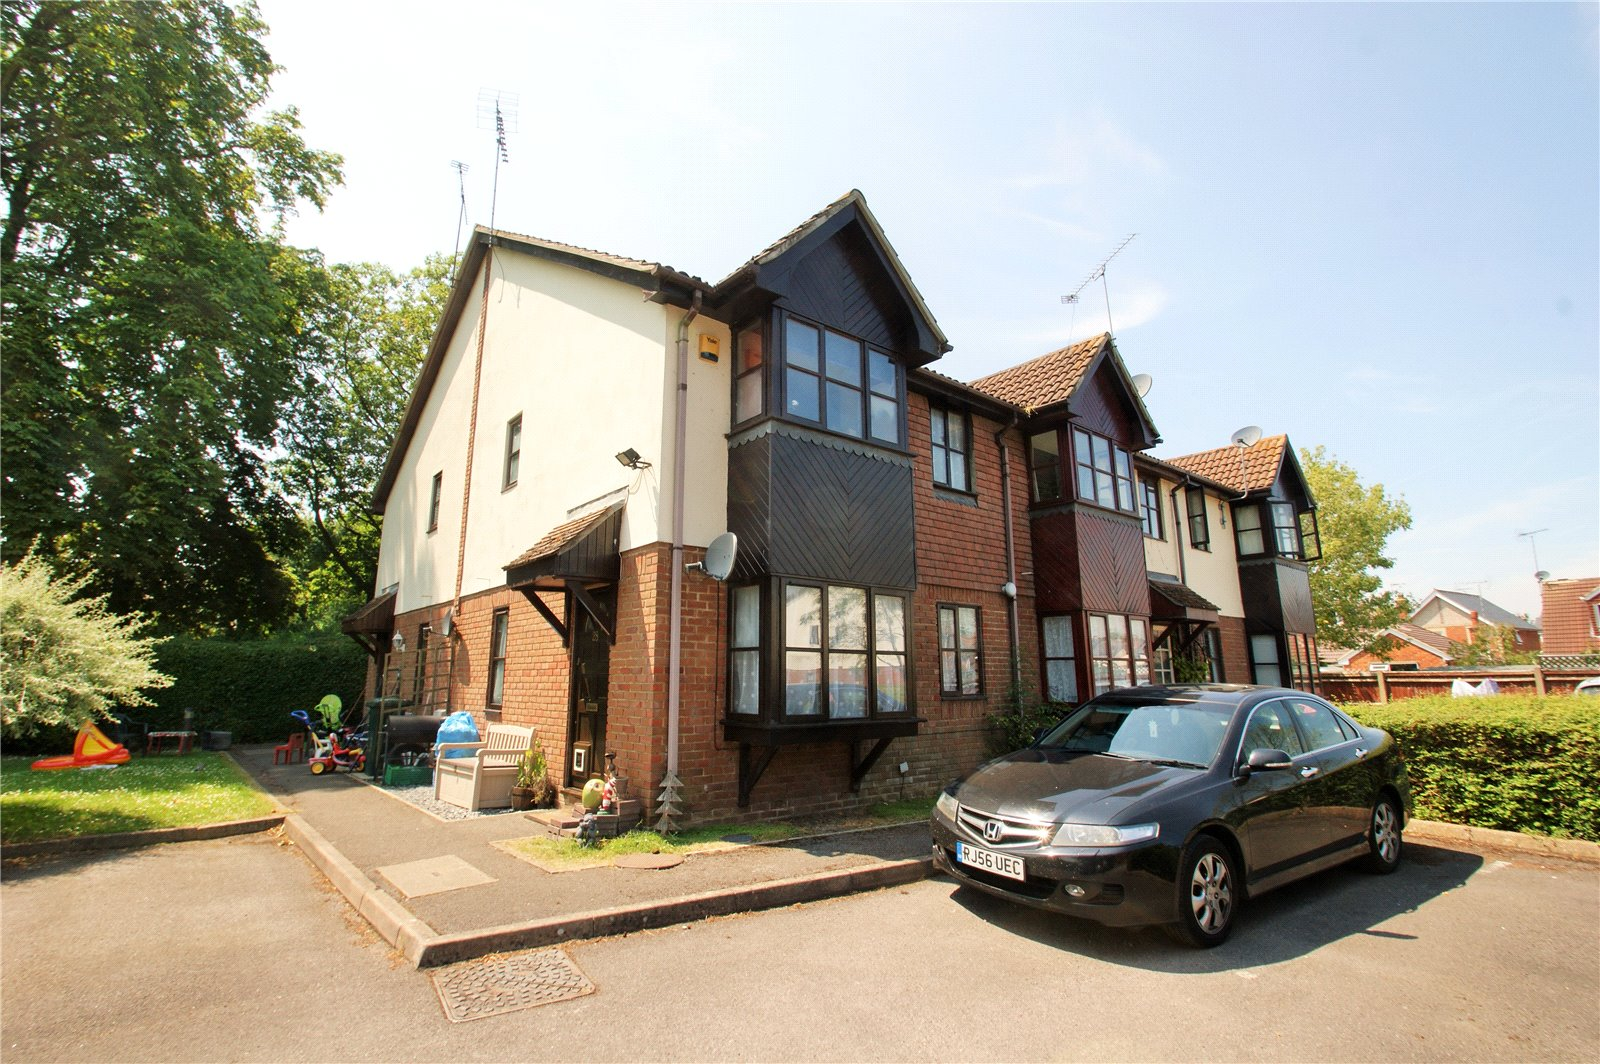 2 Bedrooms End Of Terrace House for sale in Orchard Close, Wokingham, Berkshire, RG40